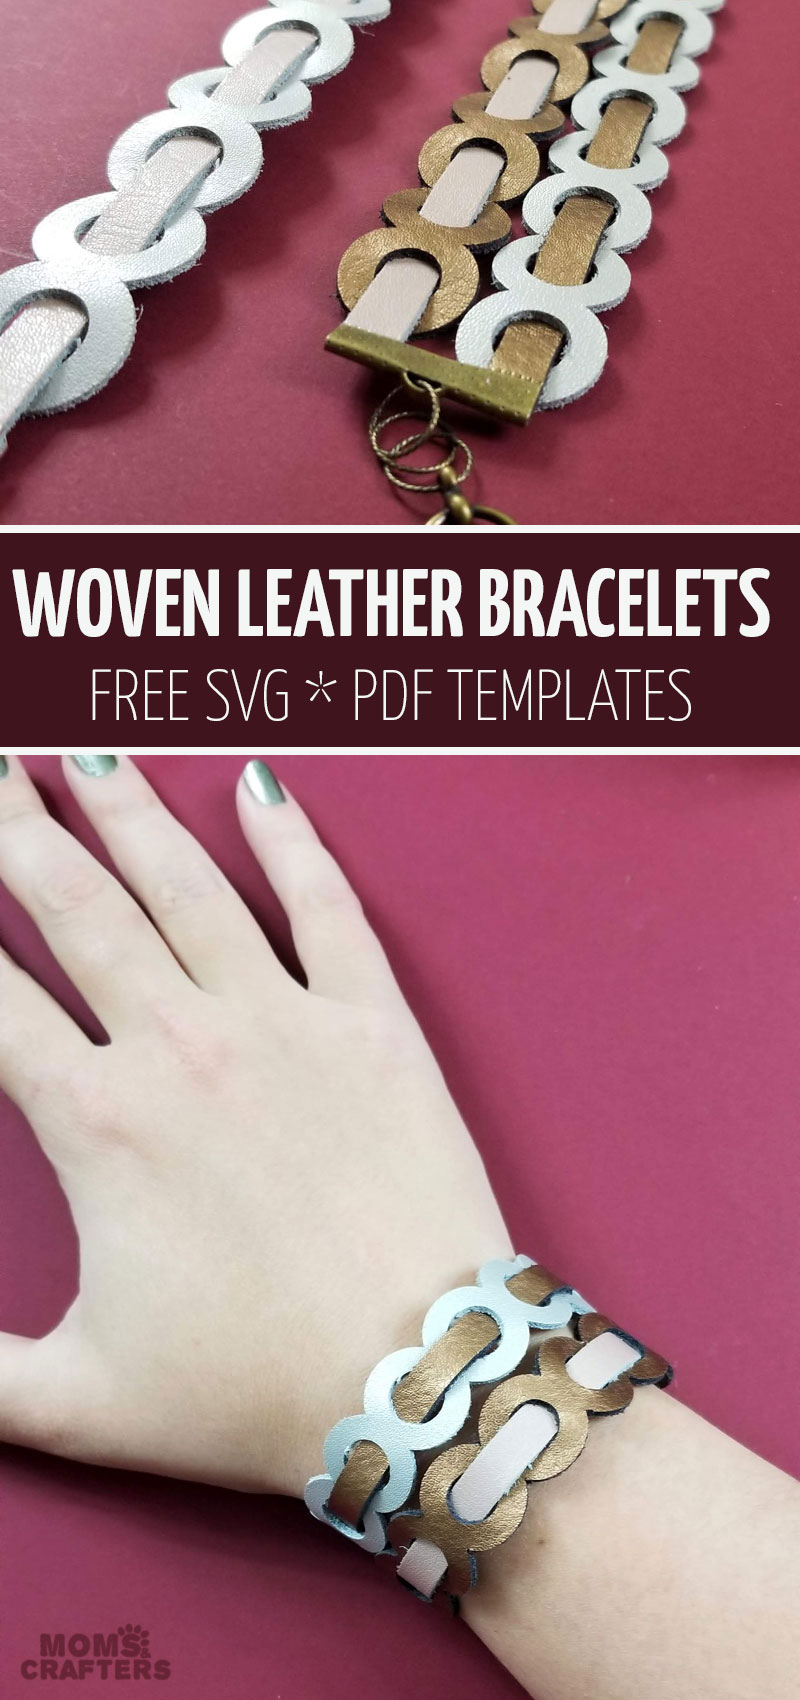 Click ot learn how to make woven leather bracelets using your Cricut Explore Air 2 or Maker. This fun leather jewerly making craft and projects includes a free SVG. It's one of my favorite cricut jewelry ideas!